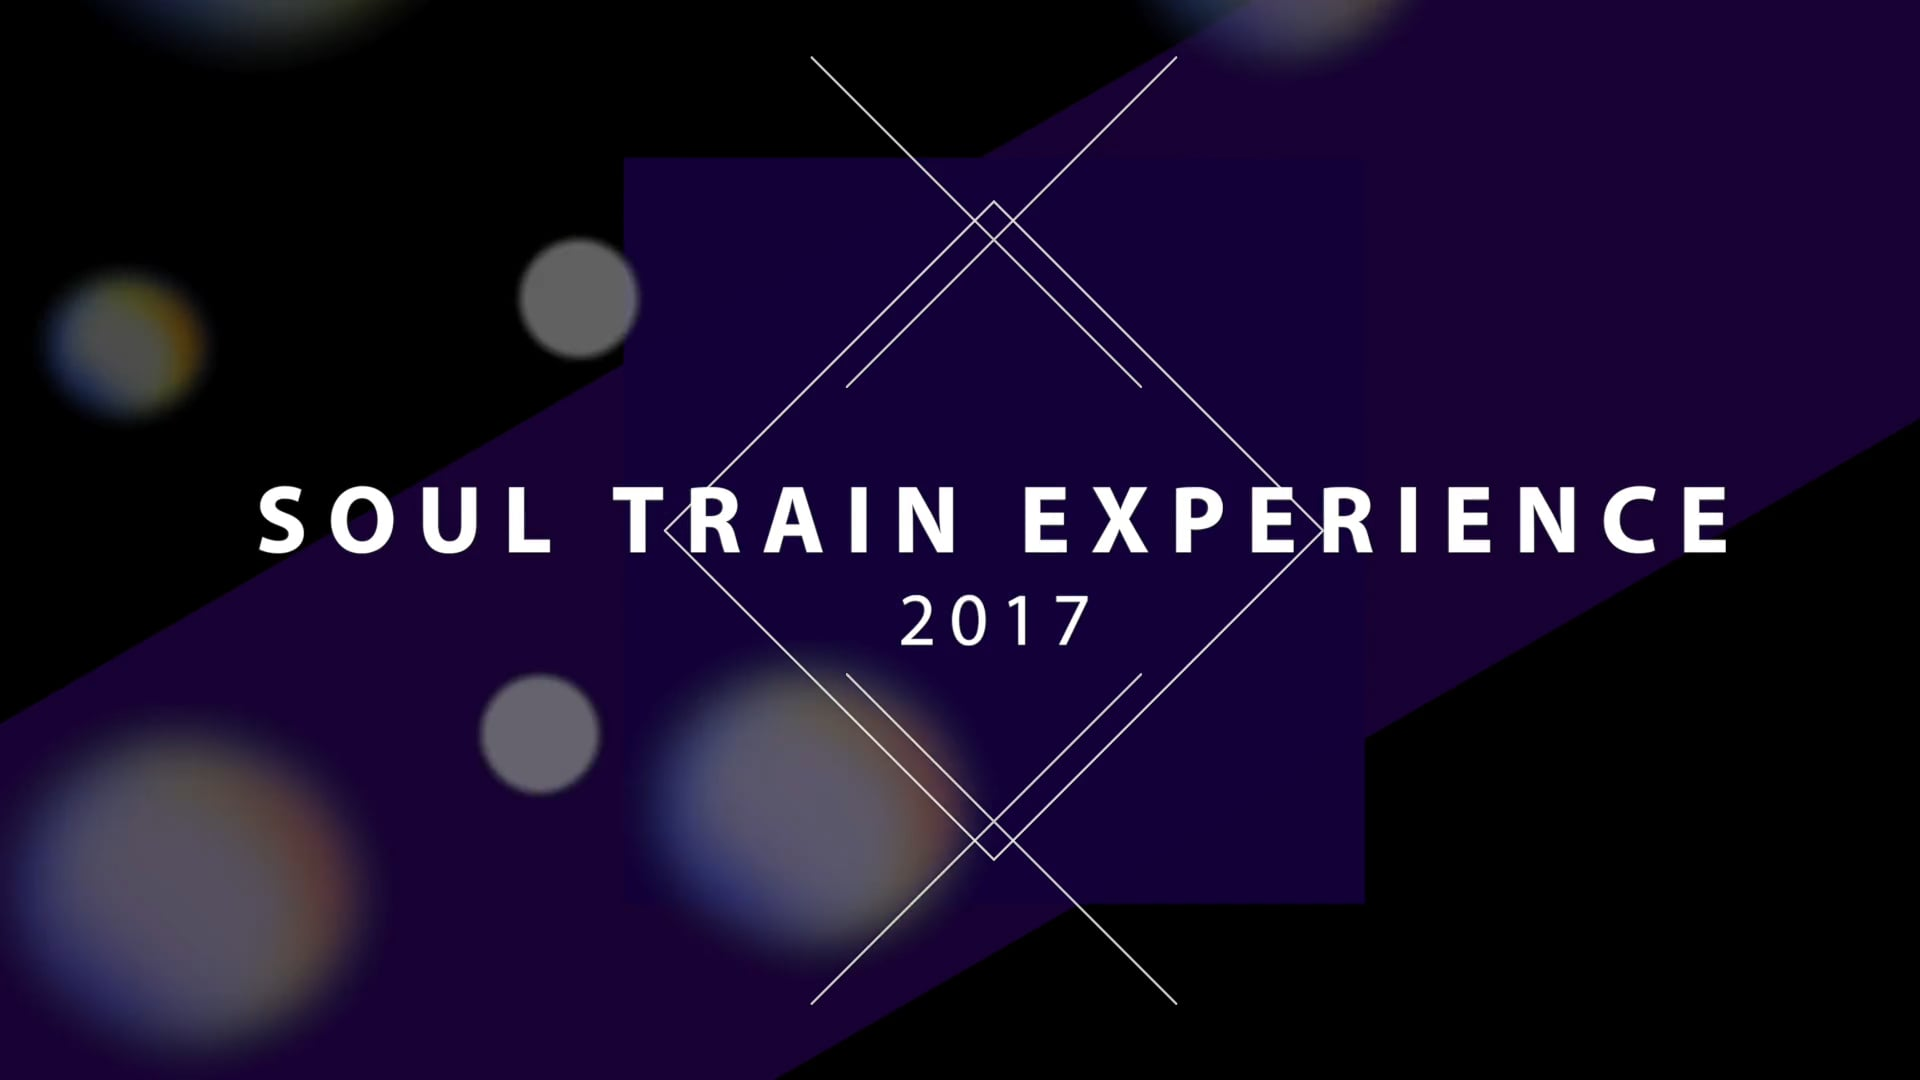 SOUL TRAIN EXPERIENCE 2017